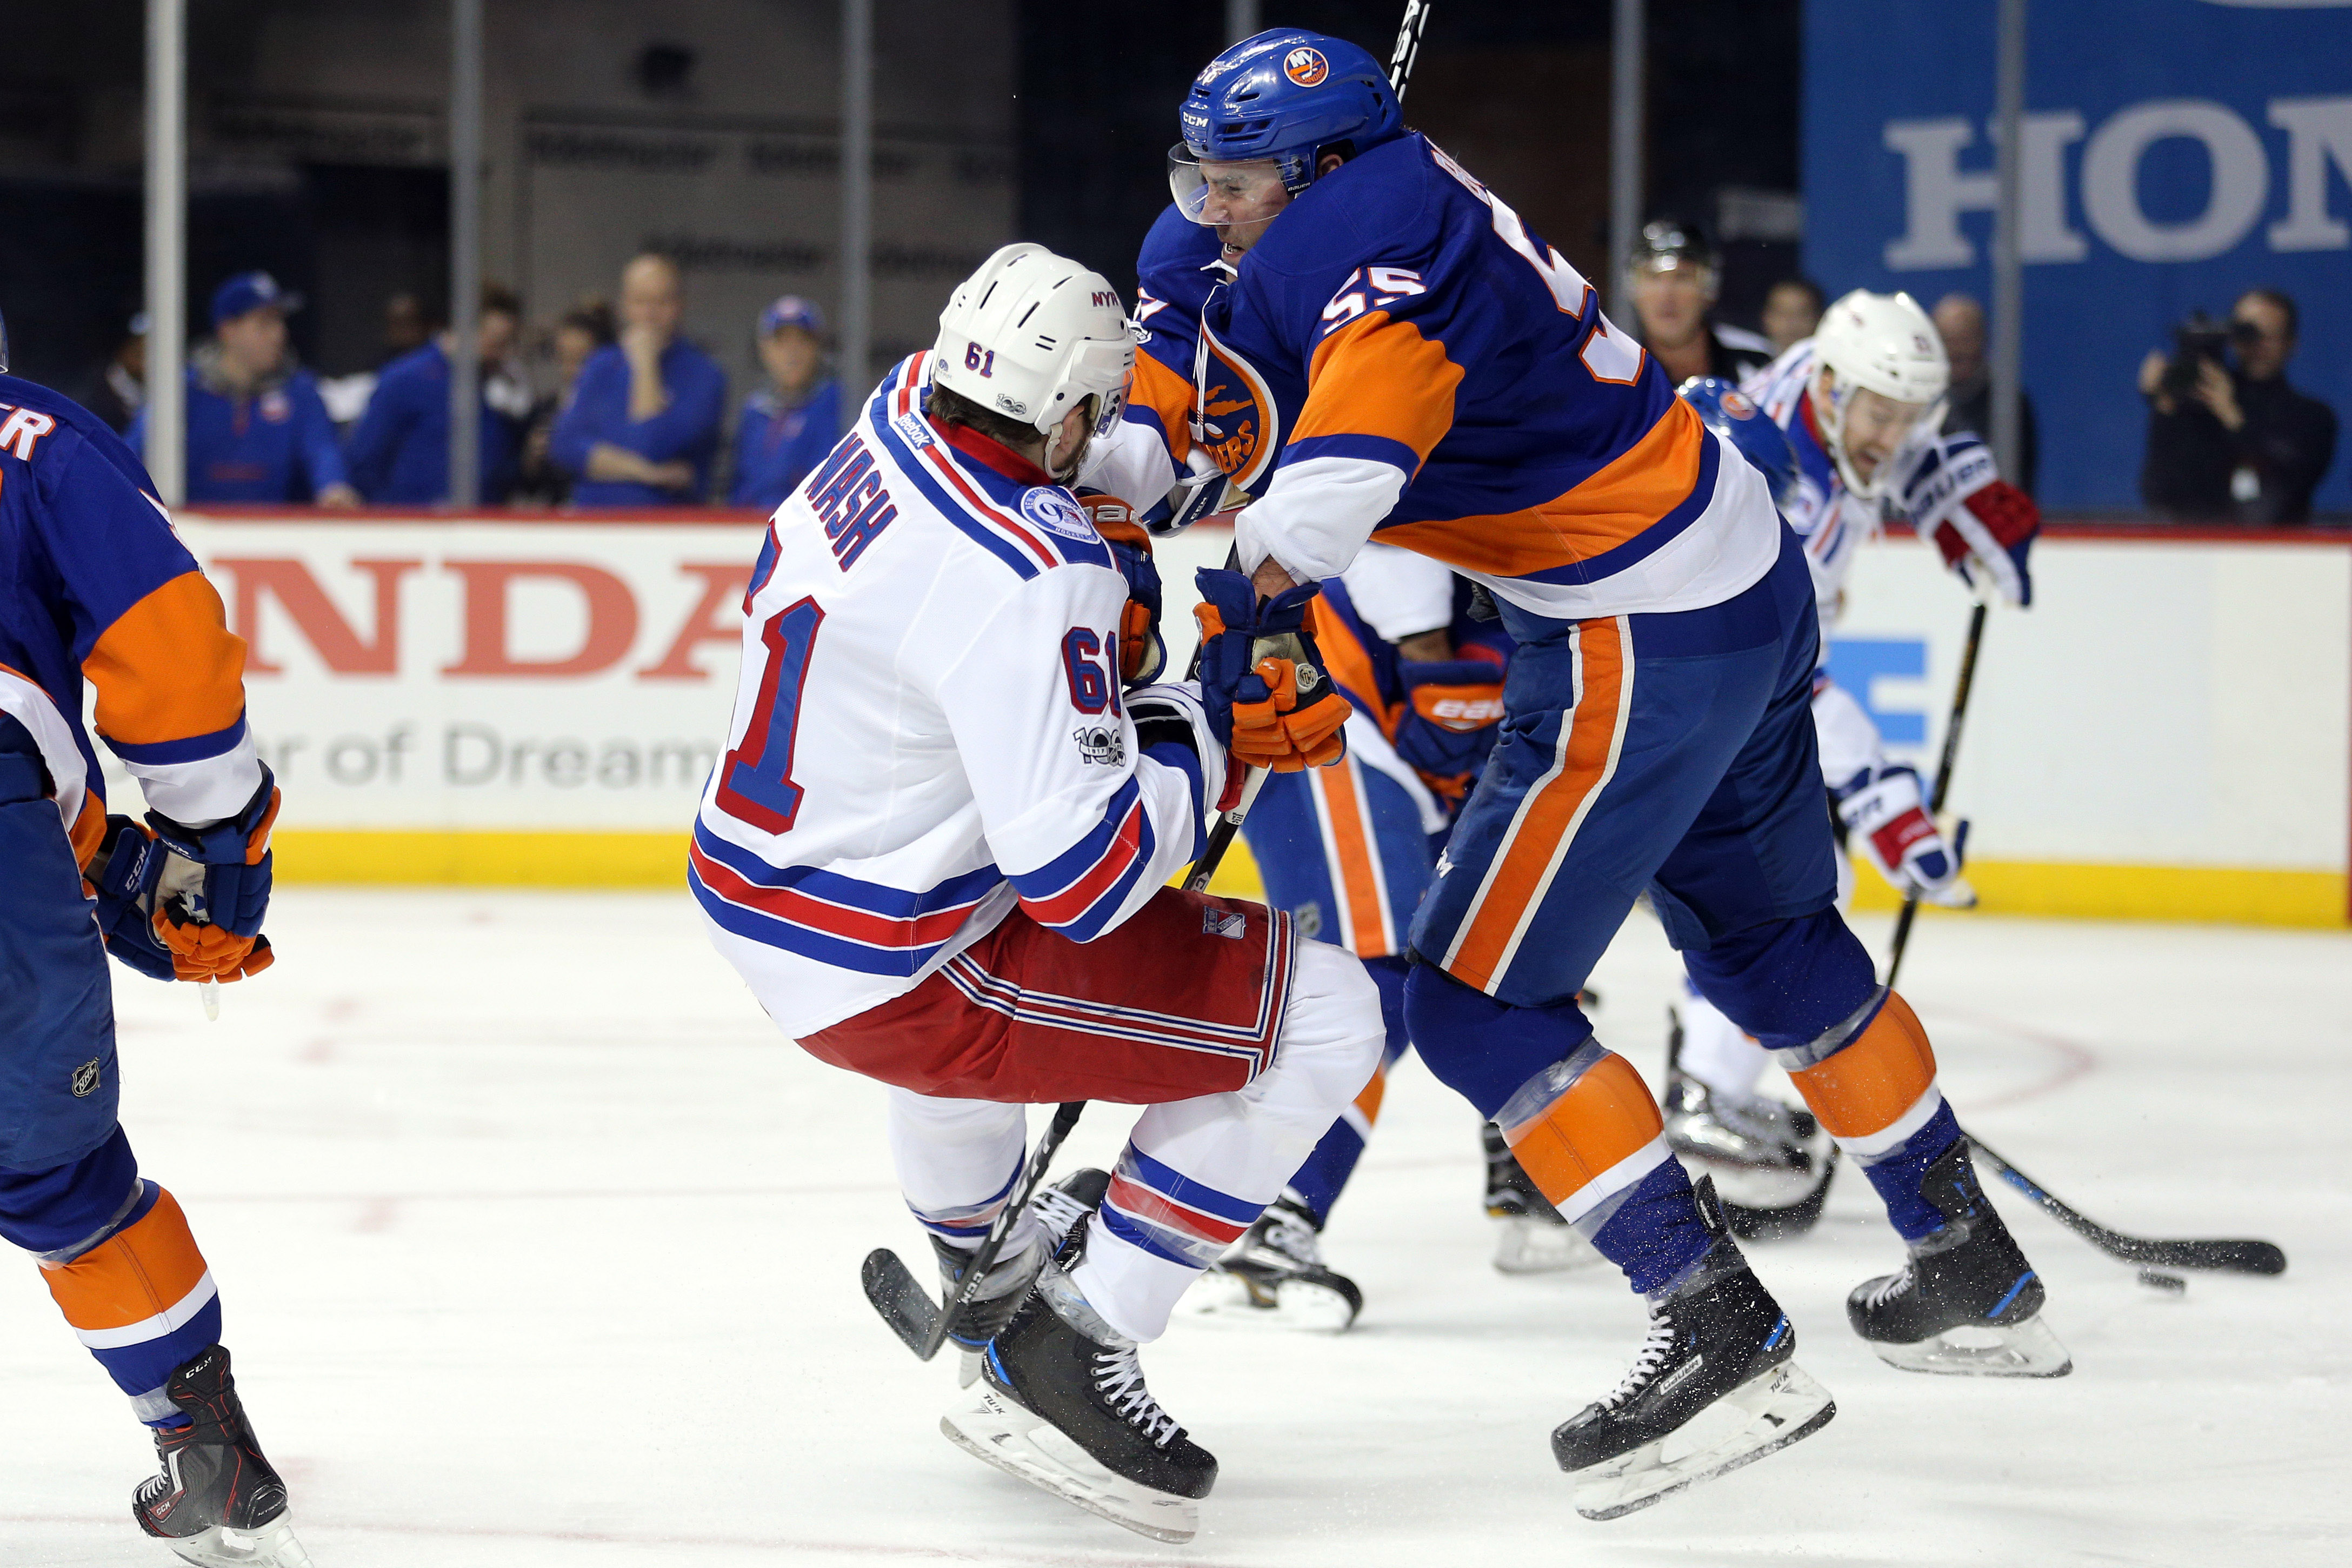 9881173-nhl-new-york-rangers-at-new-york-islanders